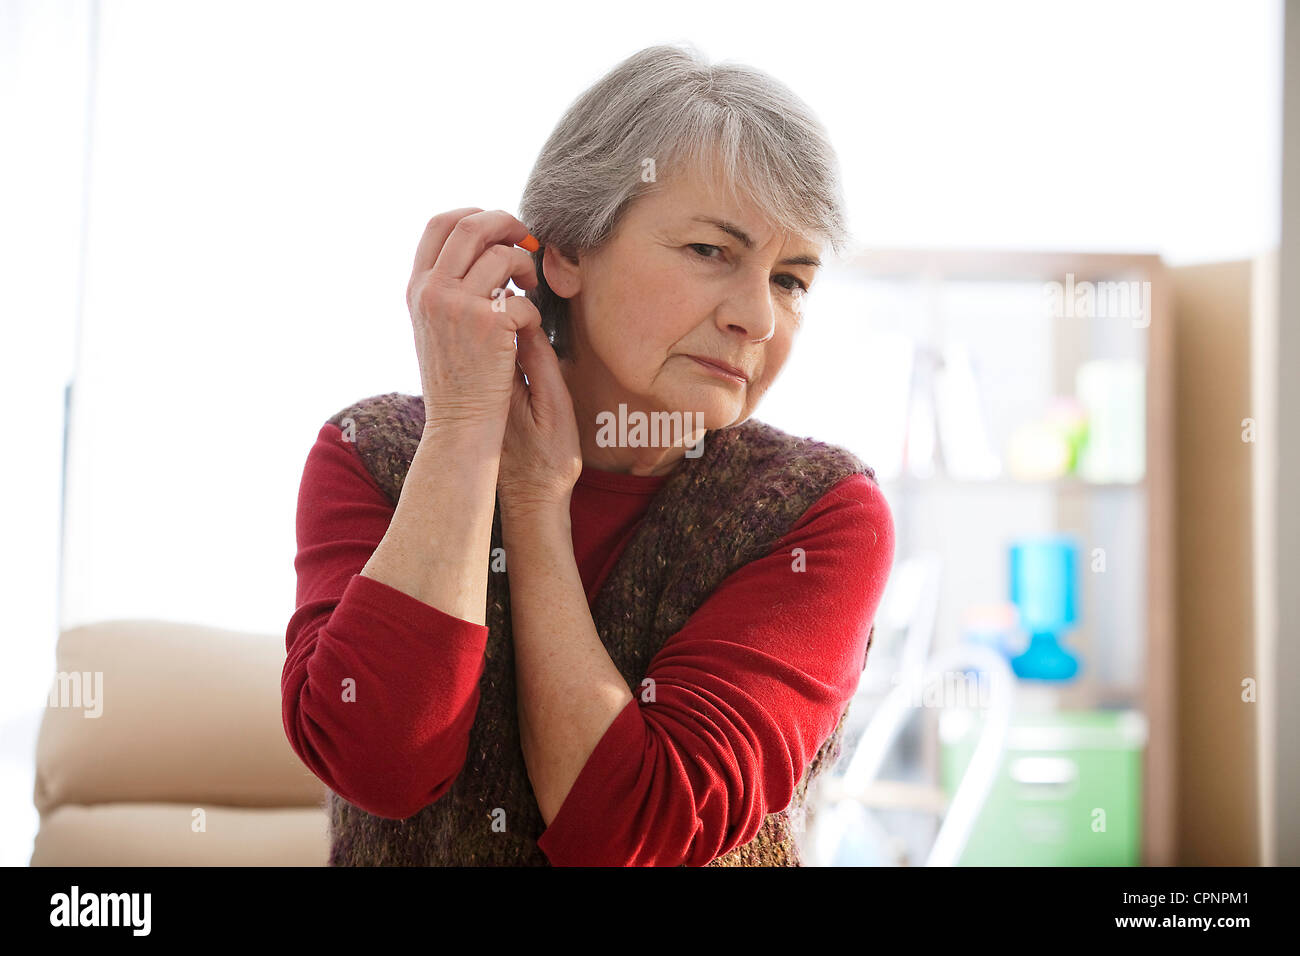 NOISE CONTROL - Stock Image